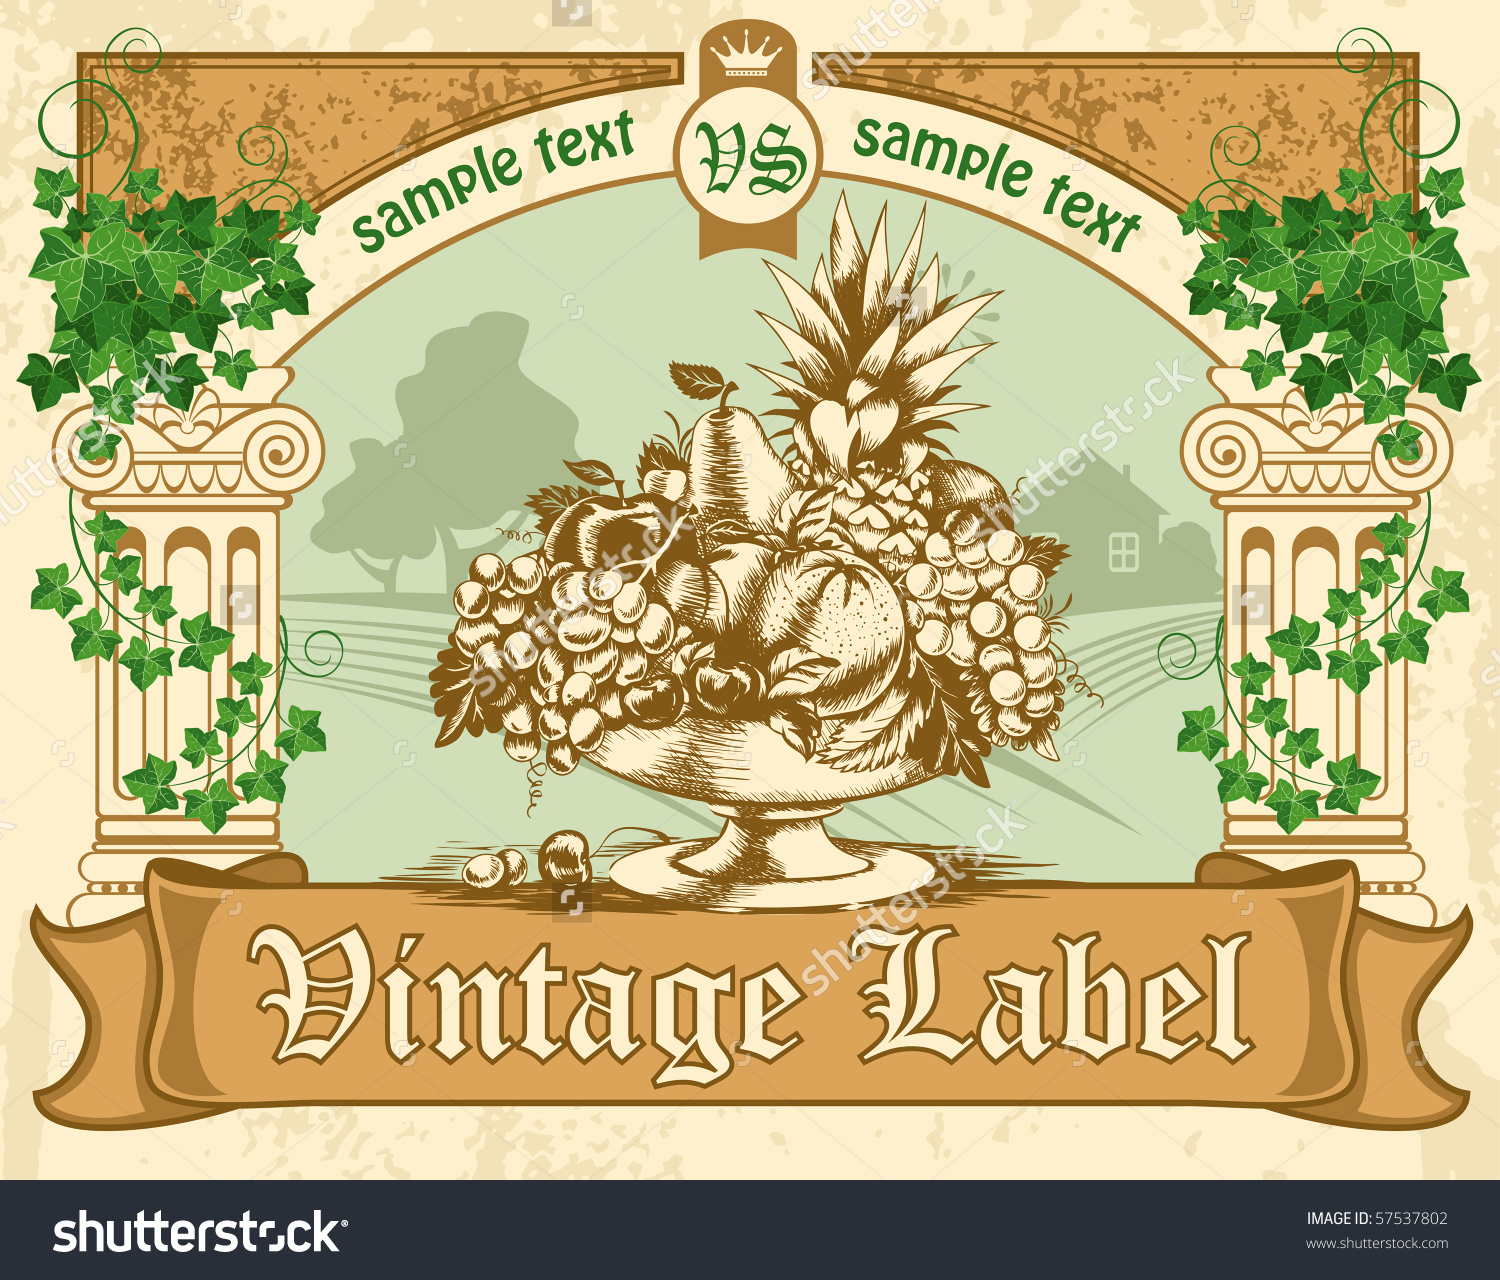 Vintage Labels, Antique Columns, Entwined With Ivy And A Bowl Of.